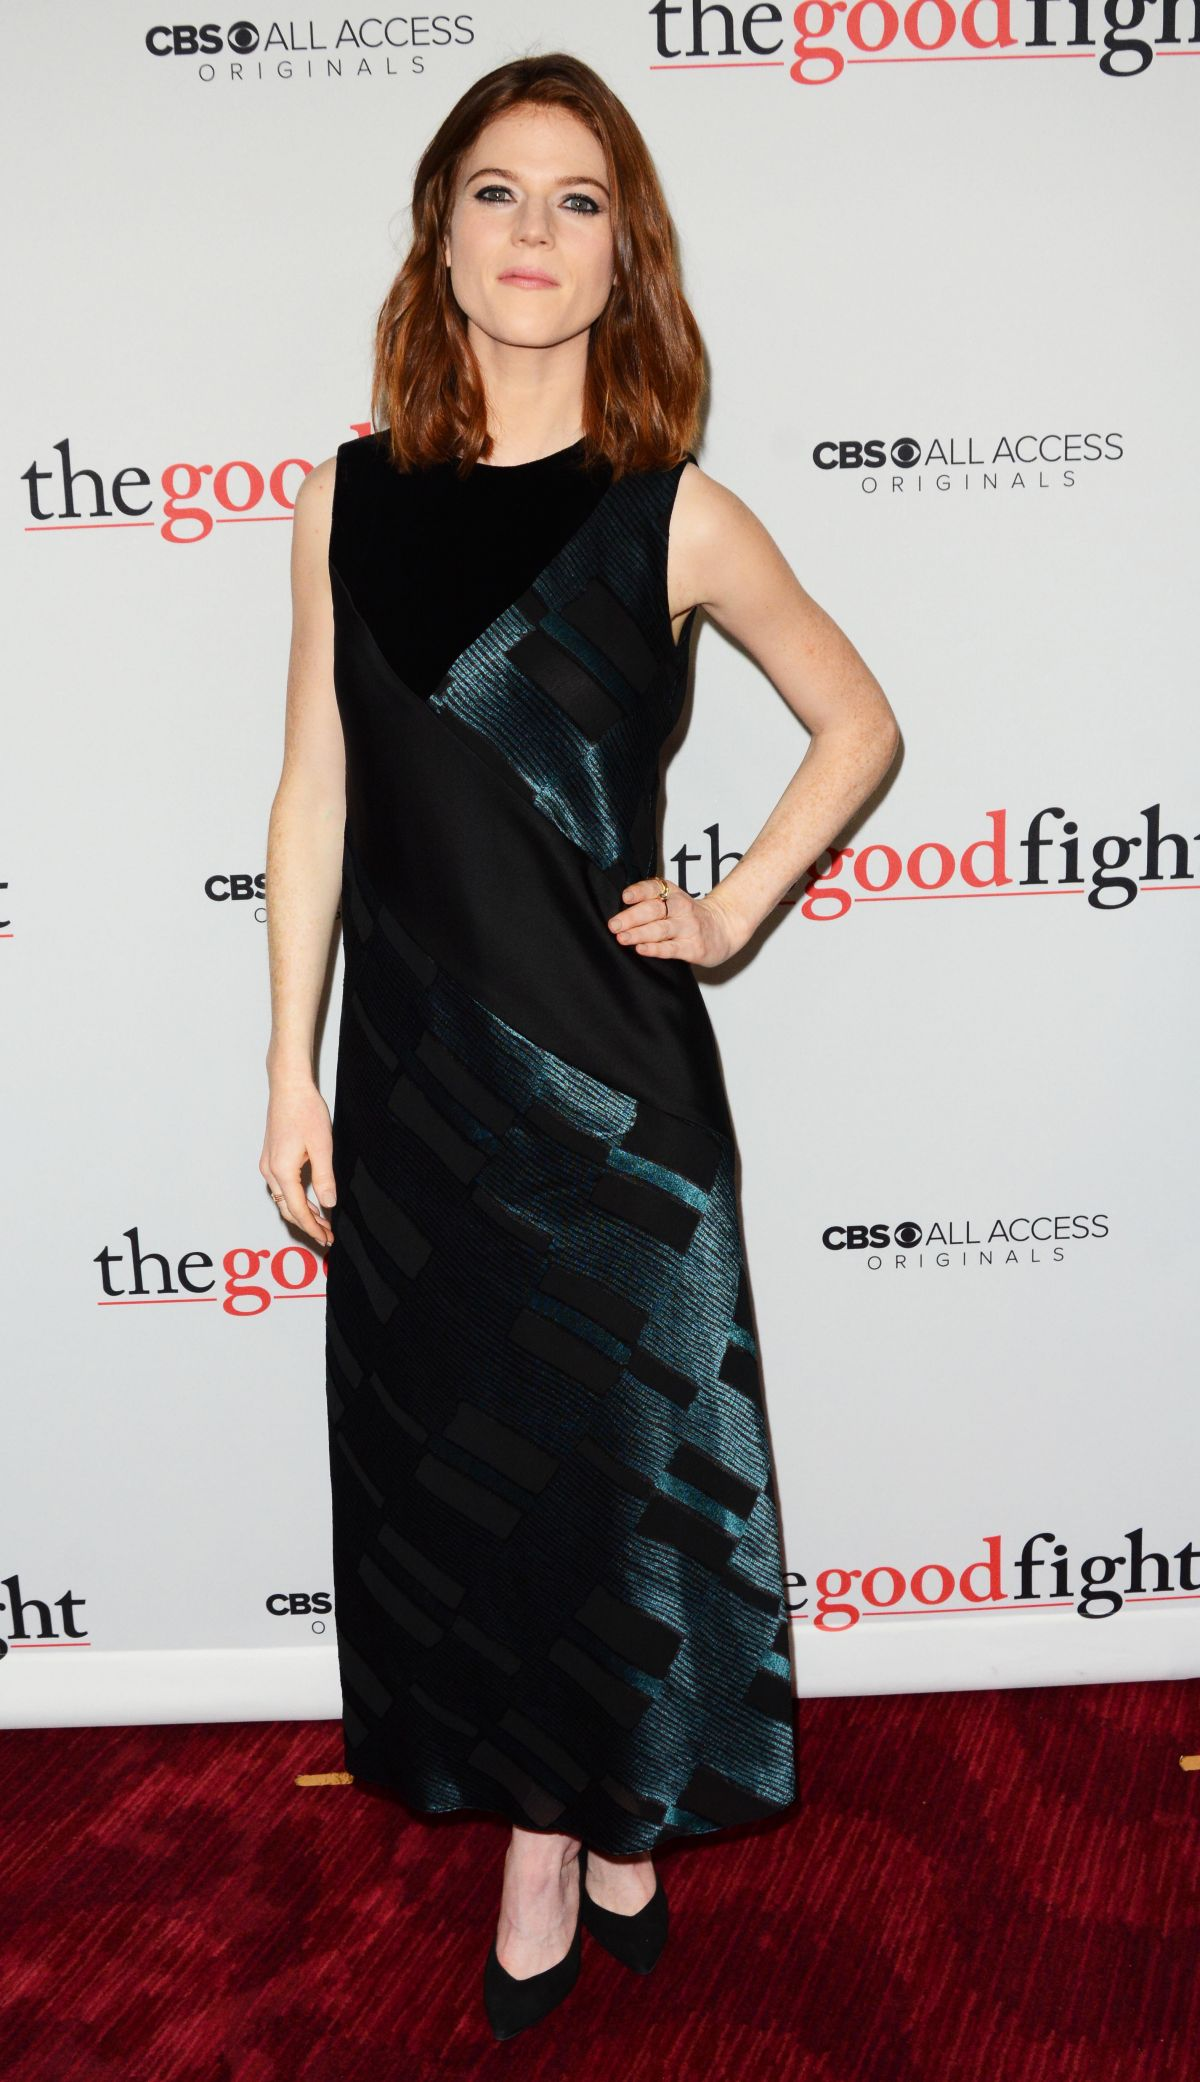 ROSE LESLIE at 'The Good Fight' Premiere in New York 02/08 ...